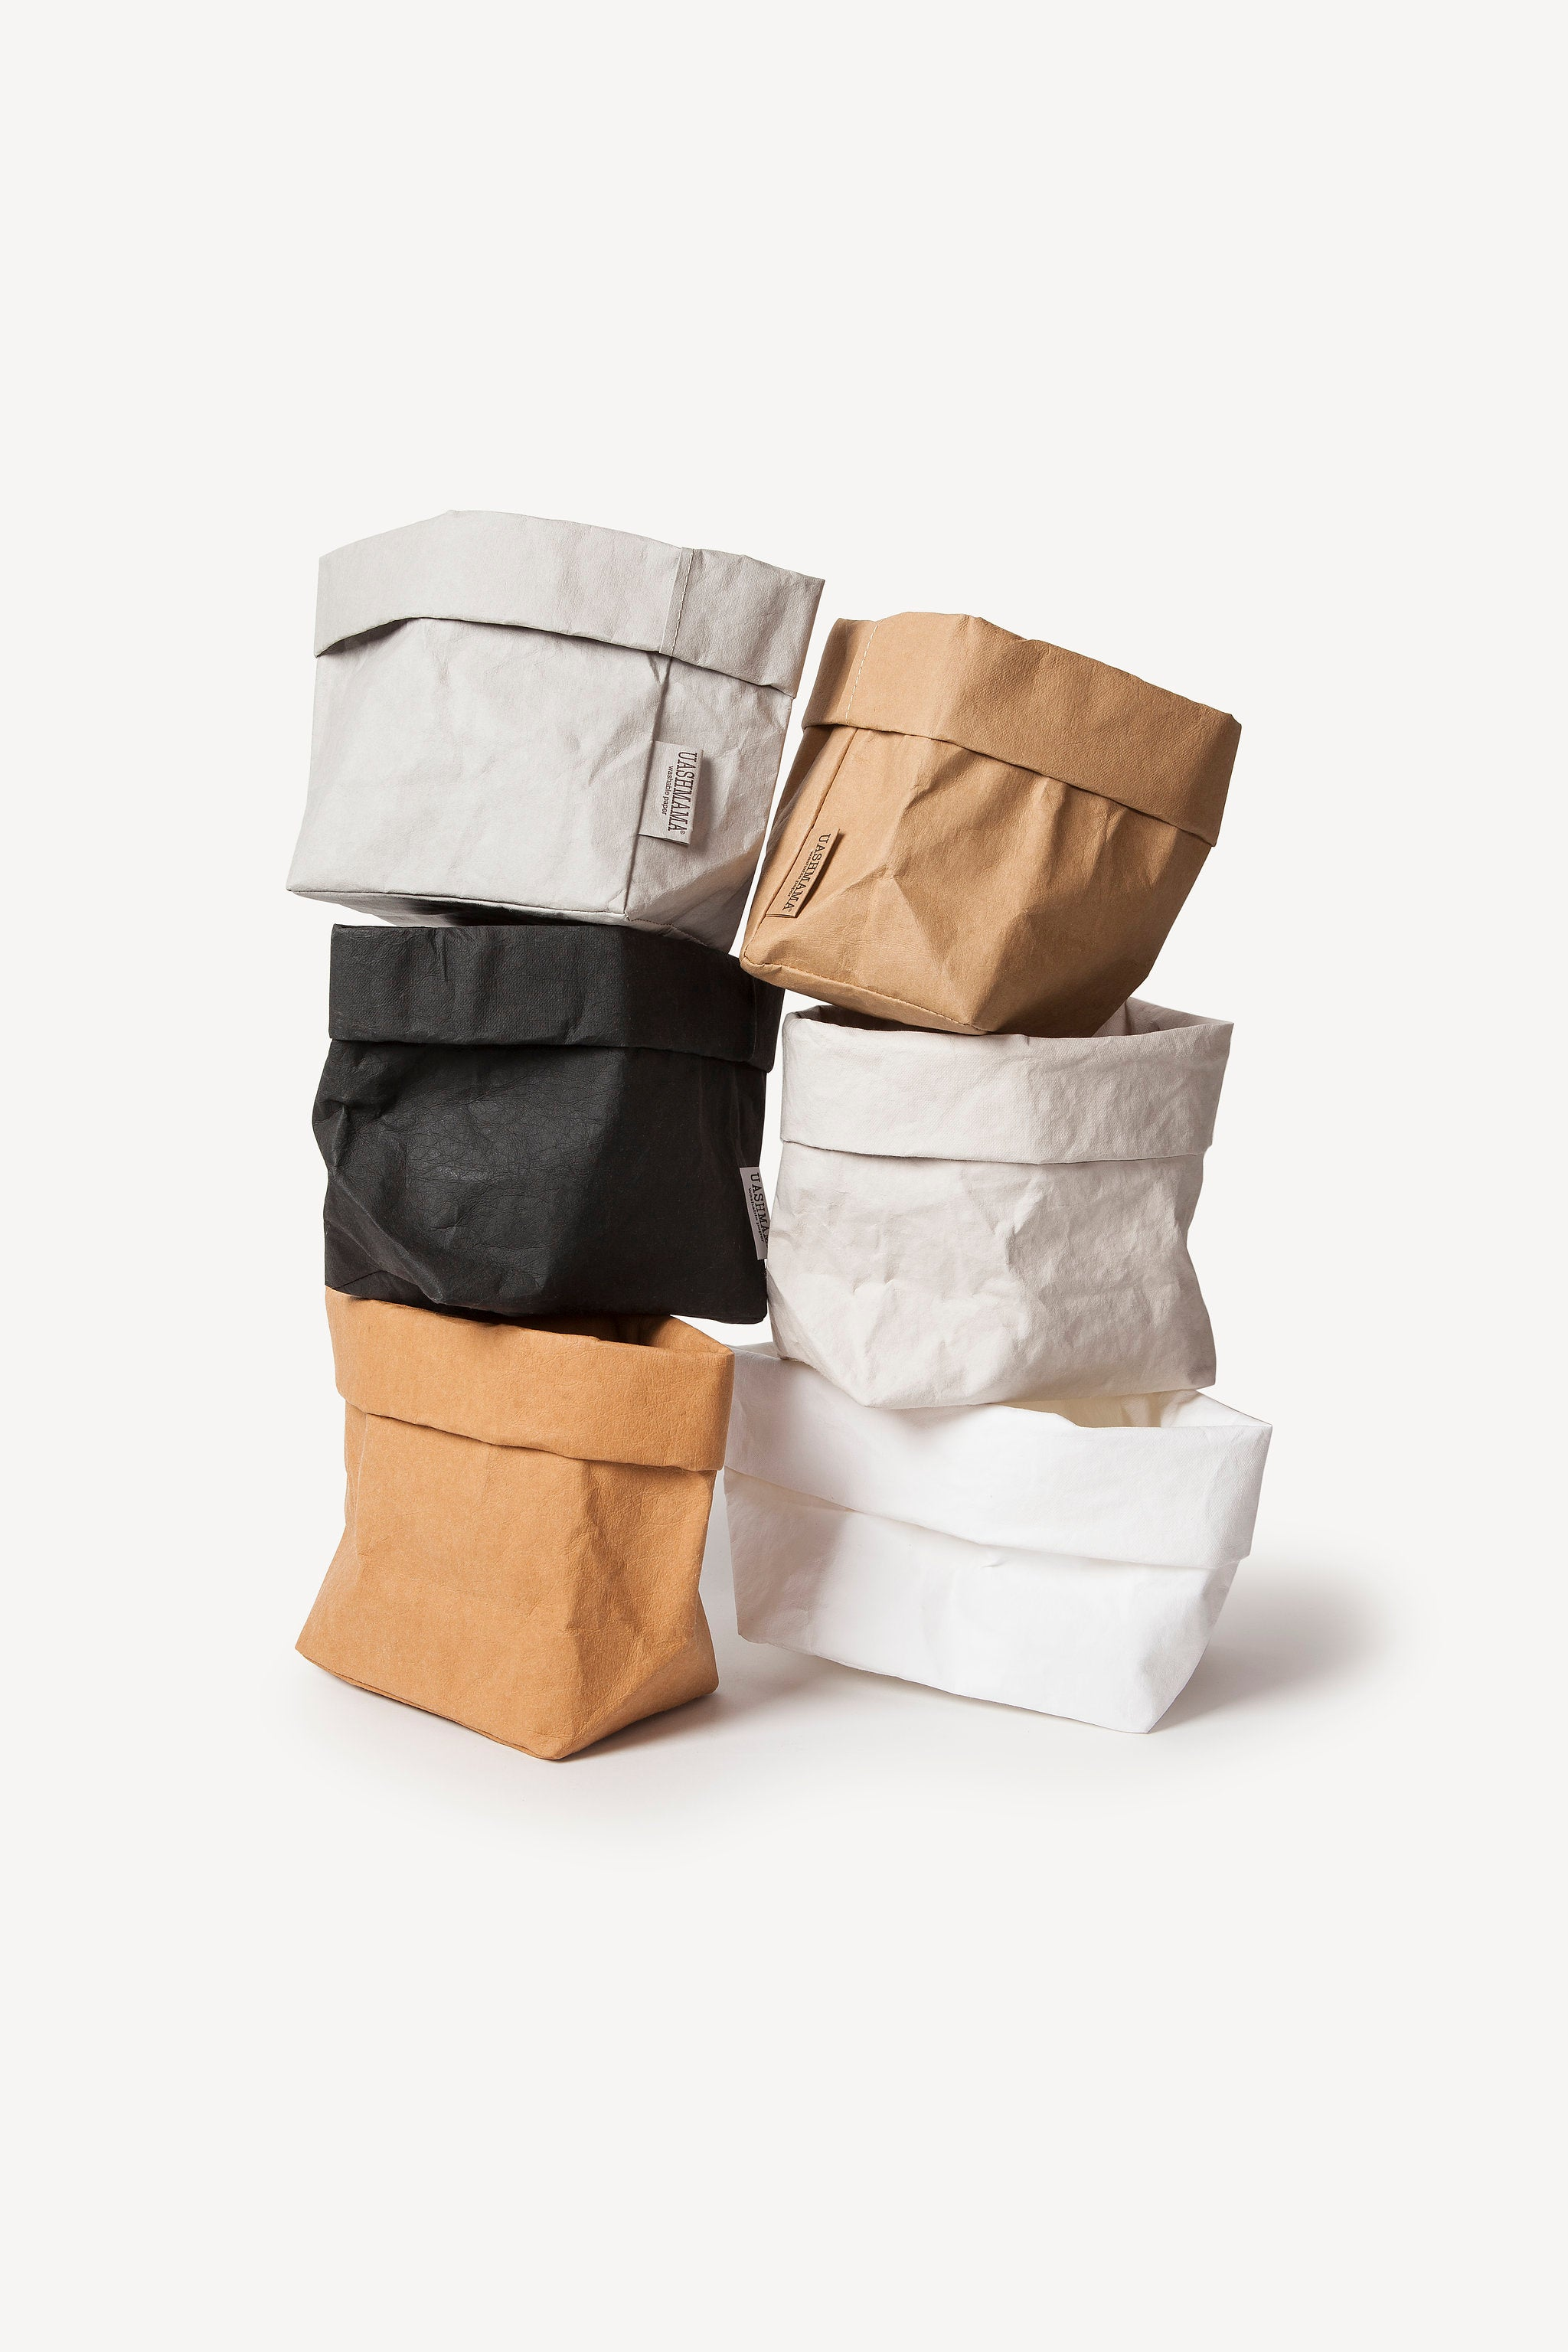 Medium washable paper bag all colors hygge life medium washable paper bag all colors reviewsmspy